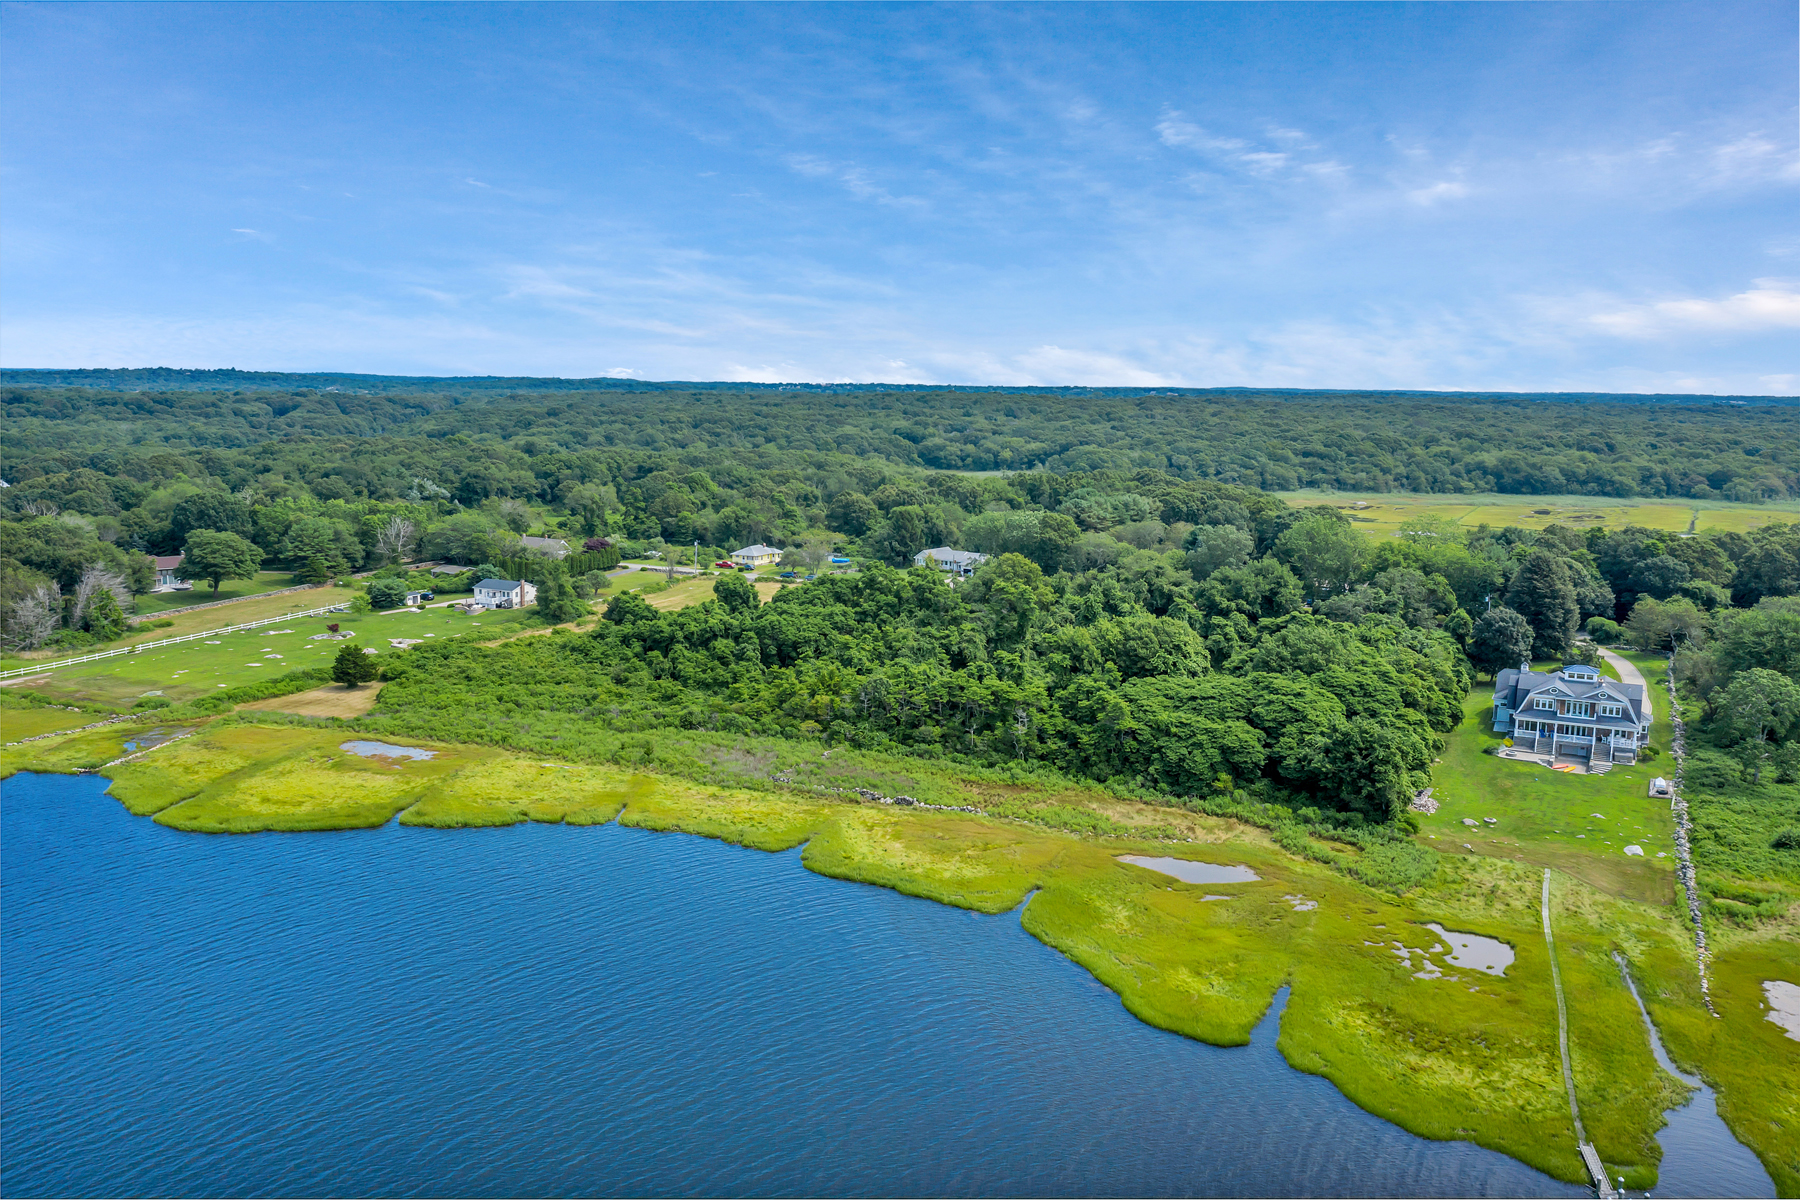 Terreno para Venda às Spectacular Waterfront Land! 238 Palmer Neck Road, Stonington, Connecticut 06379 Estados Unidos